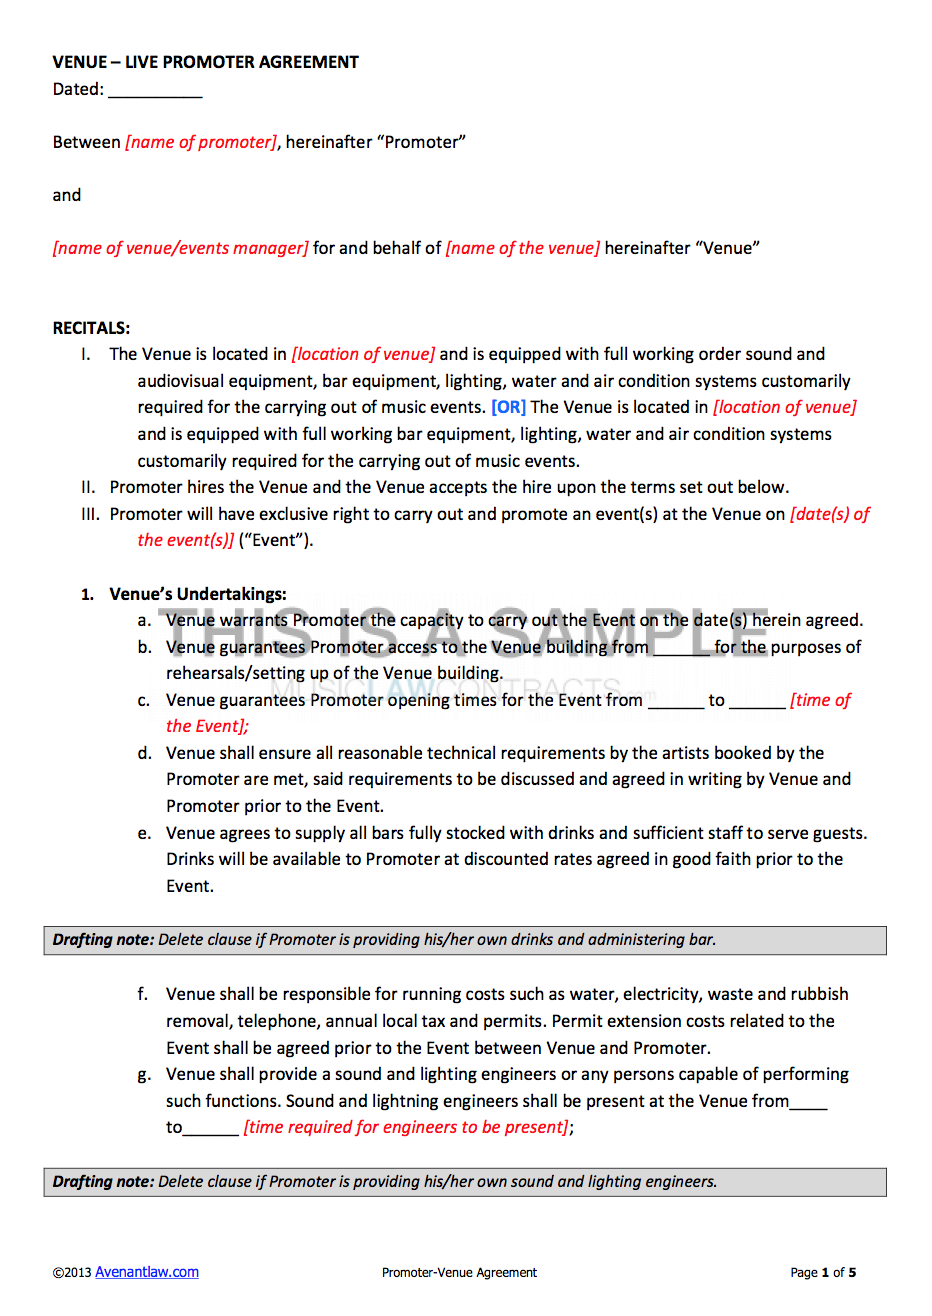 Promoter Venue Contract Template